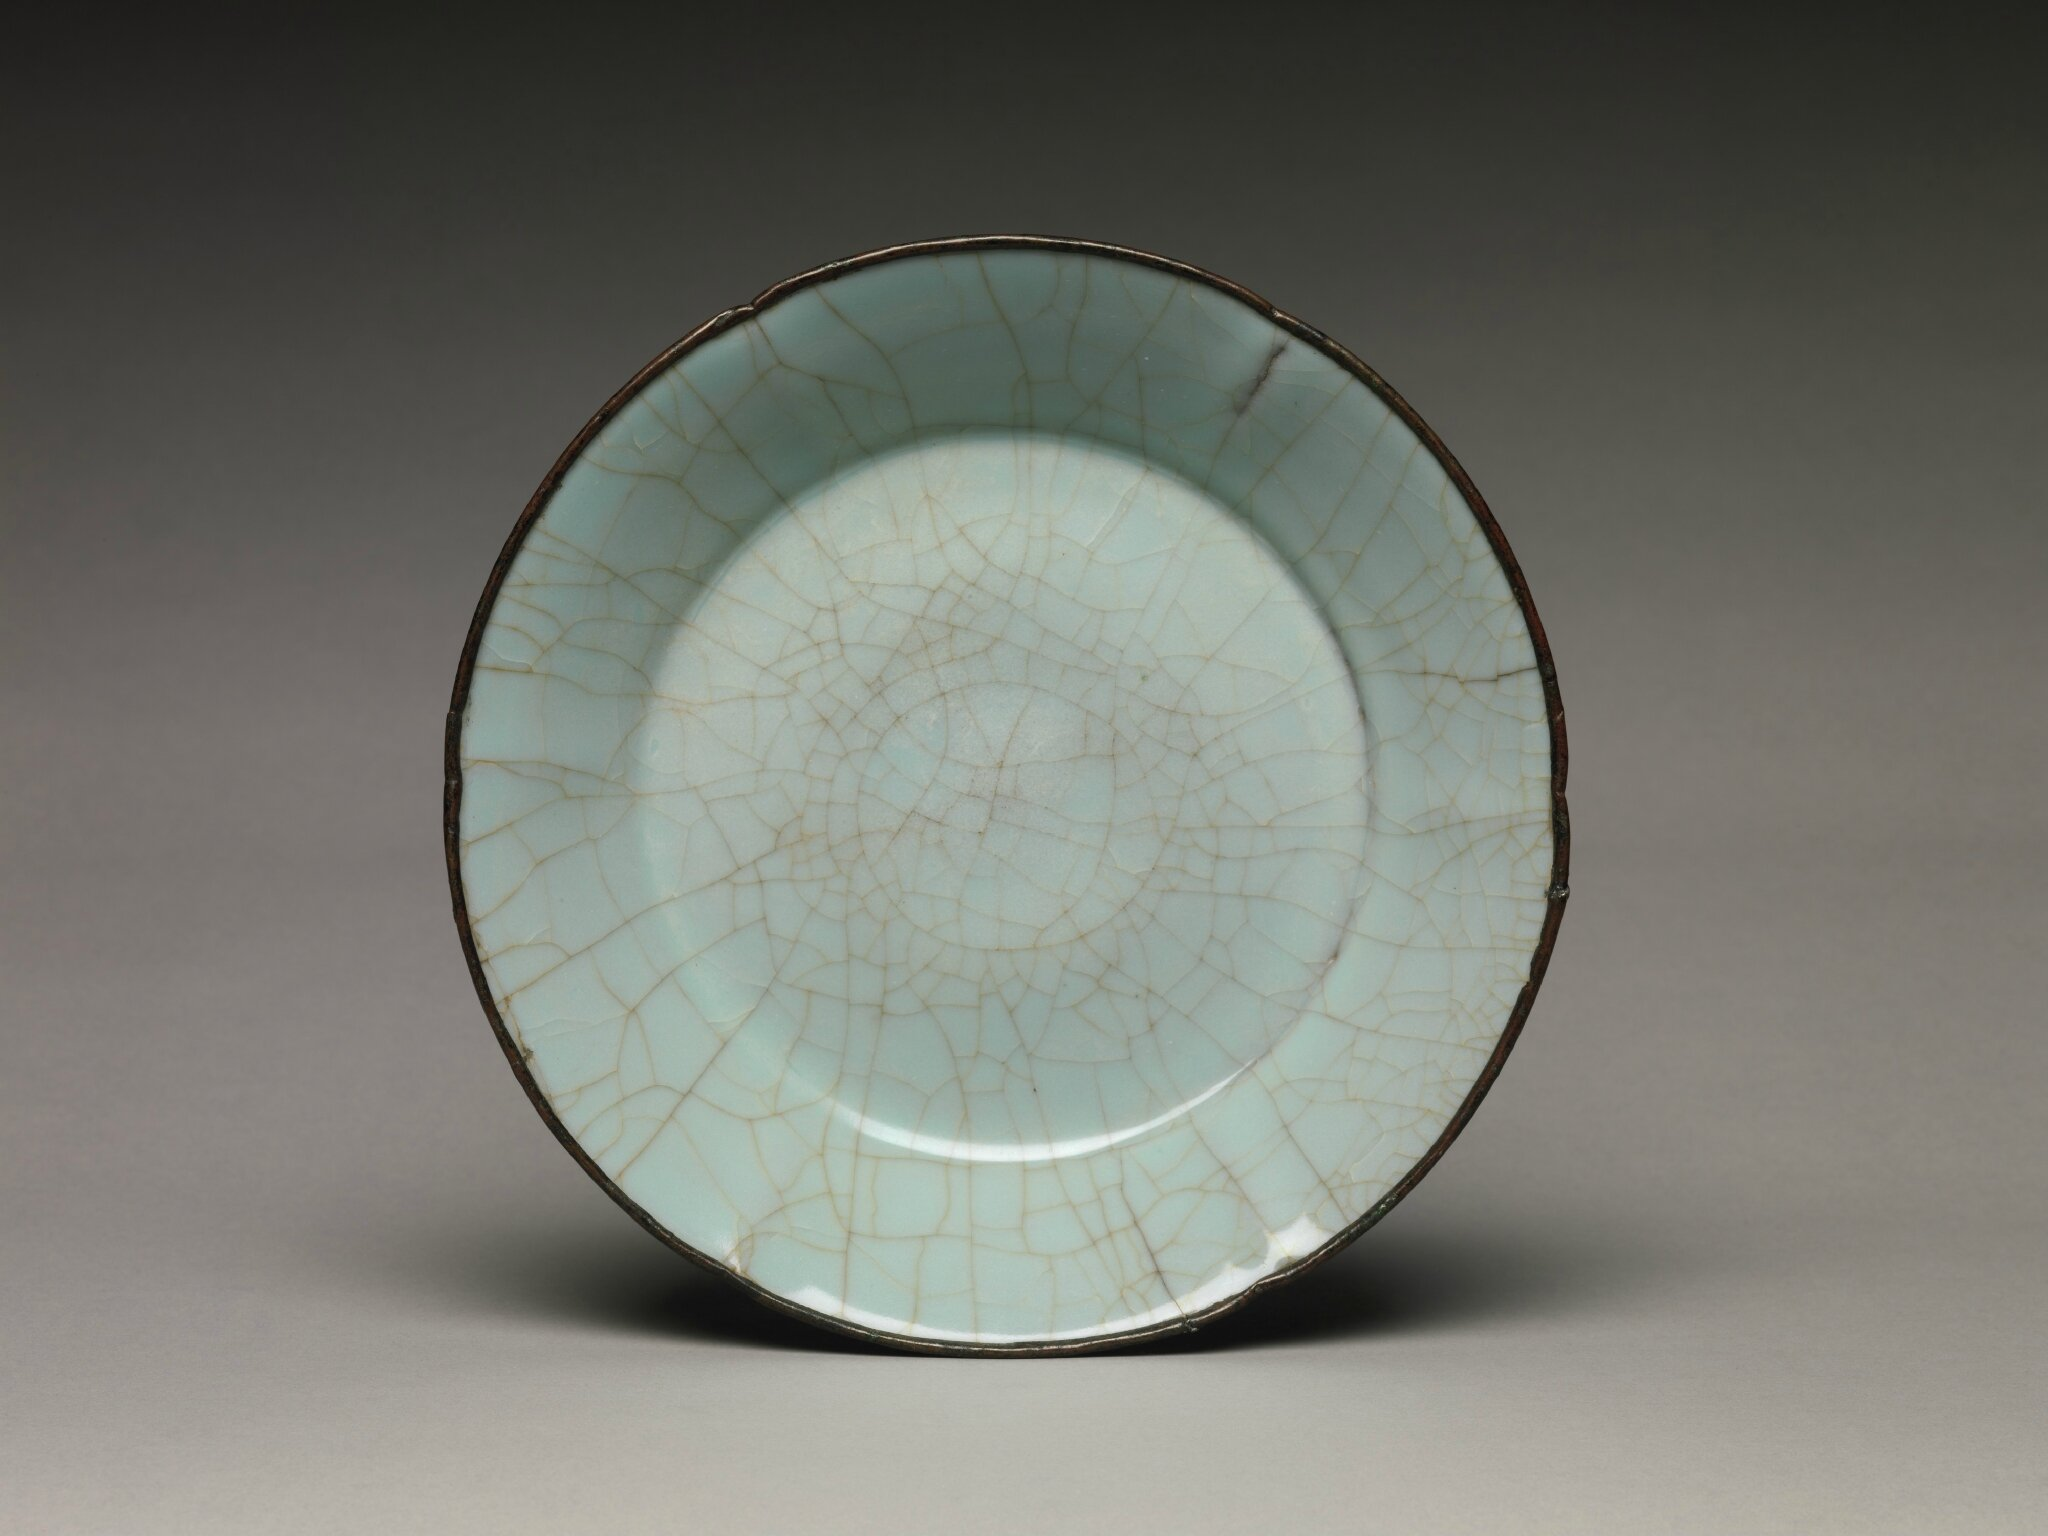 Guan ware Dish, late 12th–13th century, Southern Song dynasty (1127–1279)